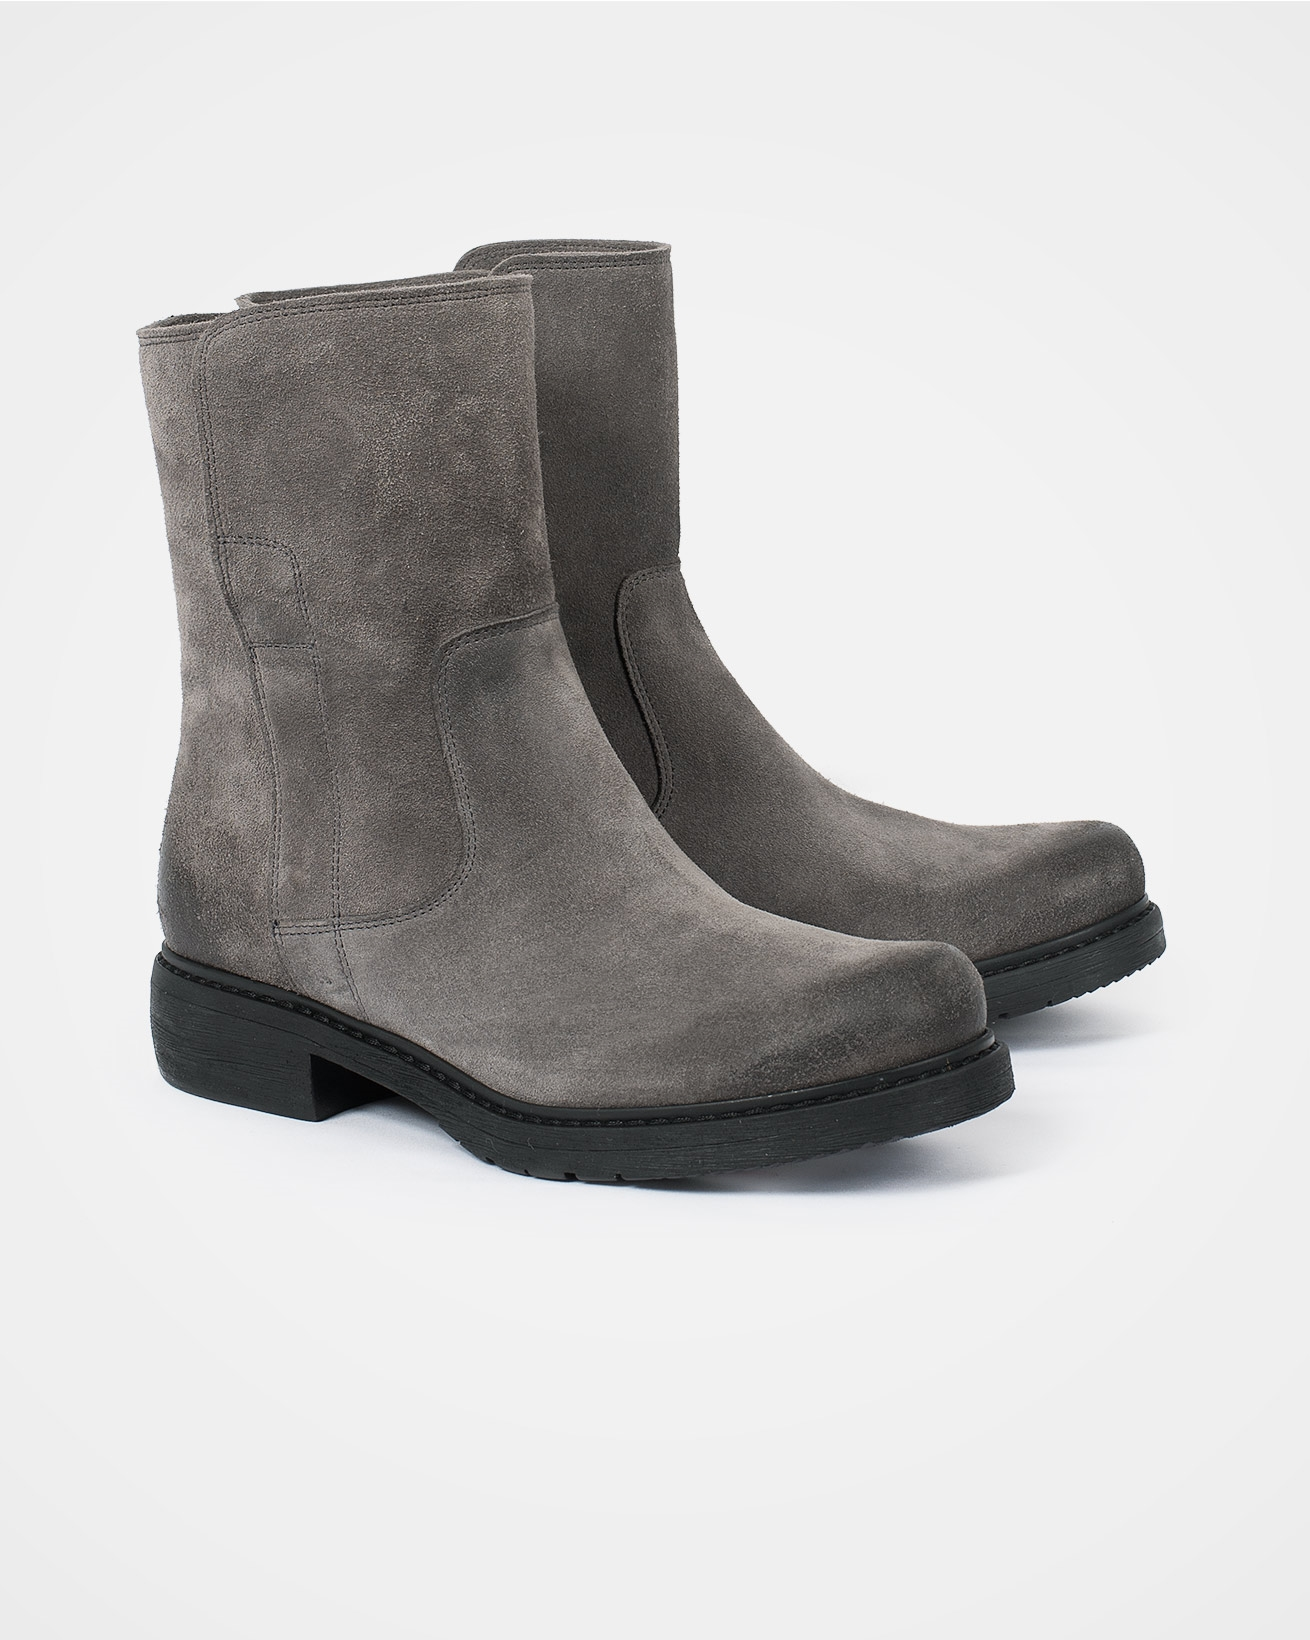 Essential Leather Ankle Boots - Size 39 - Grey - 2092